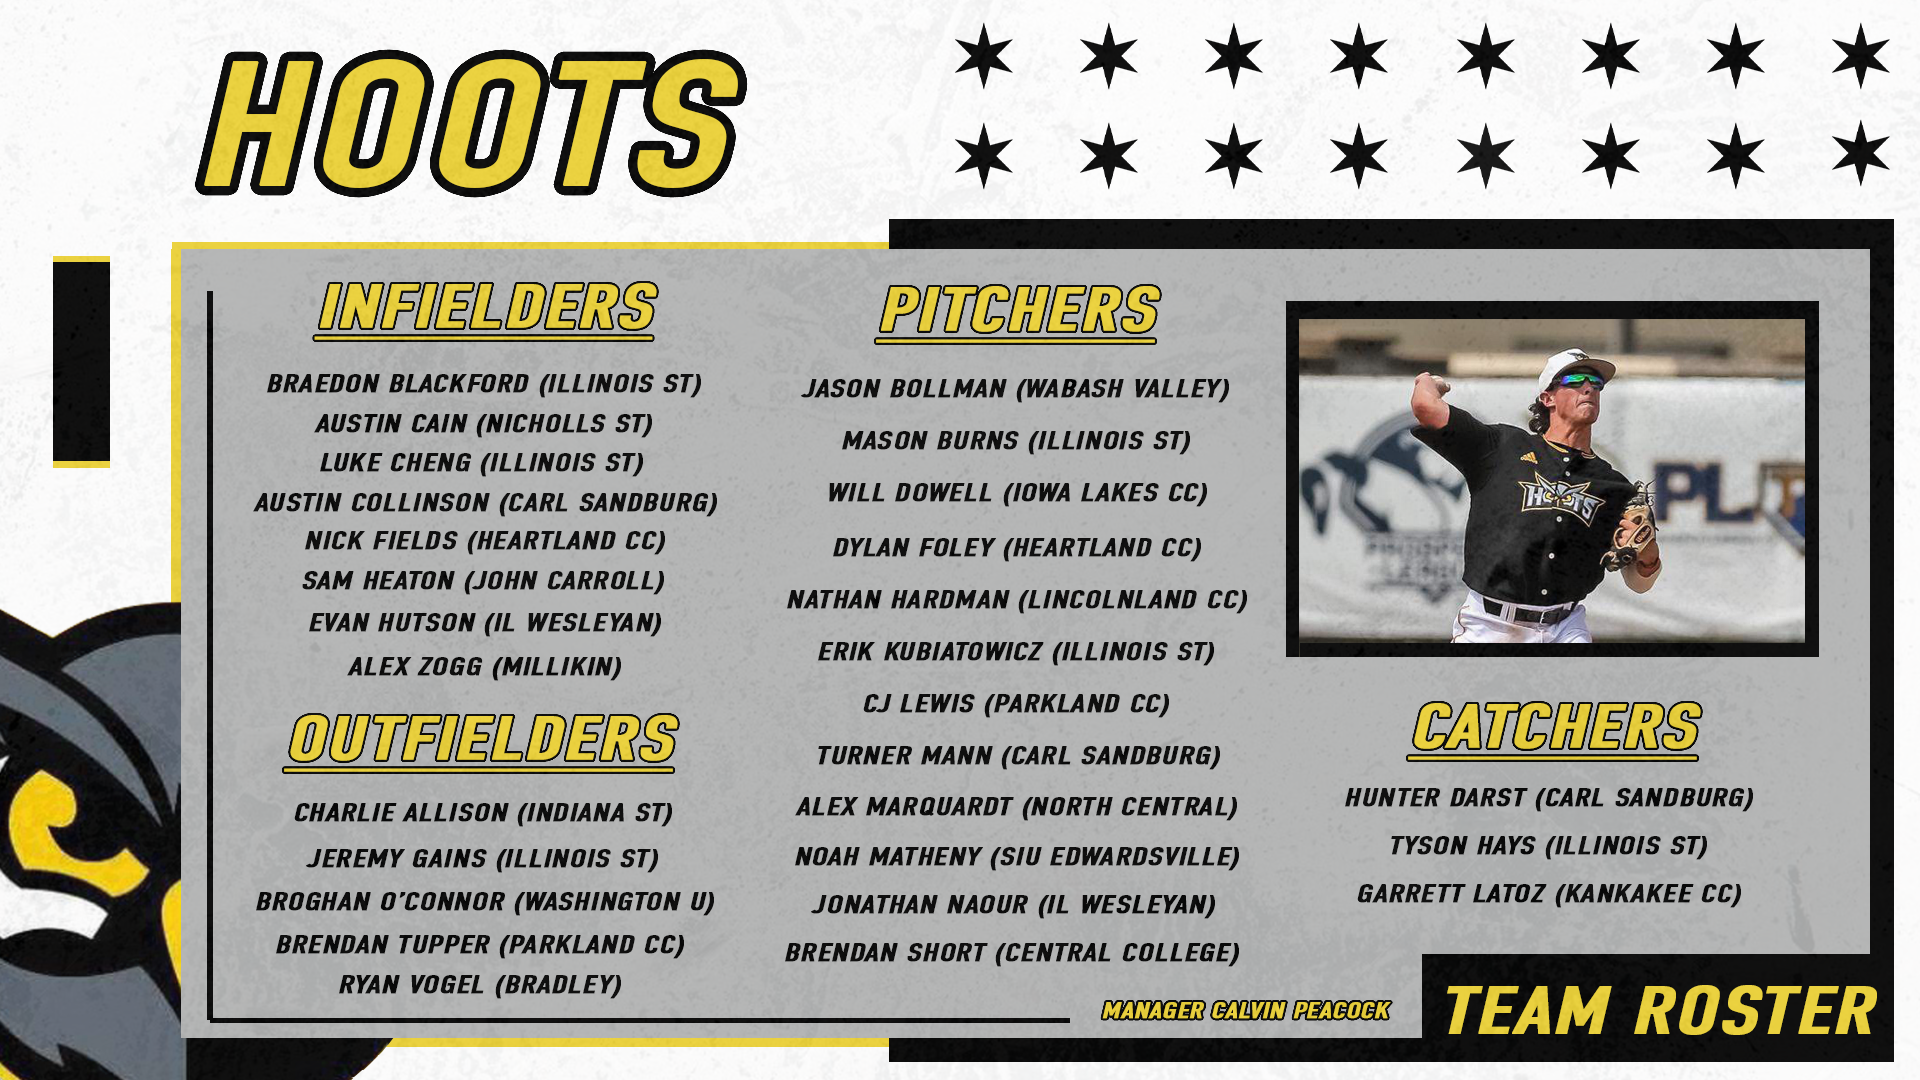 Roster Template - Hoots